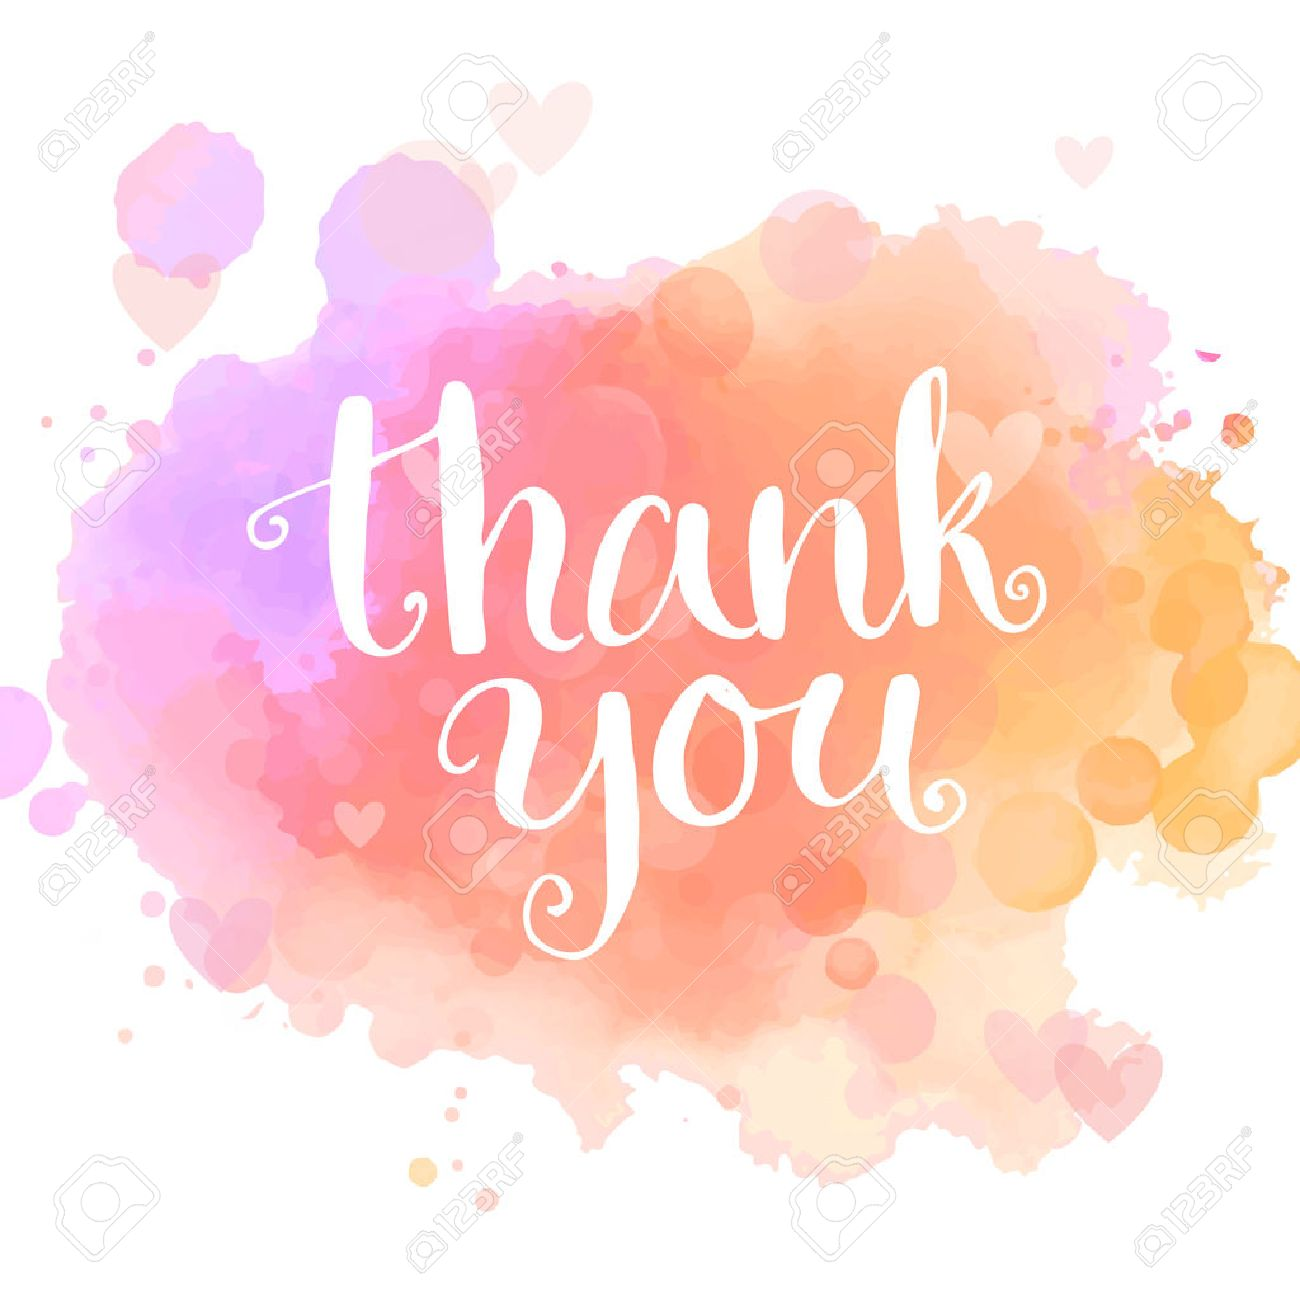 thank you card stock photos royalty free thank you card images